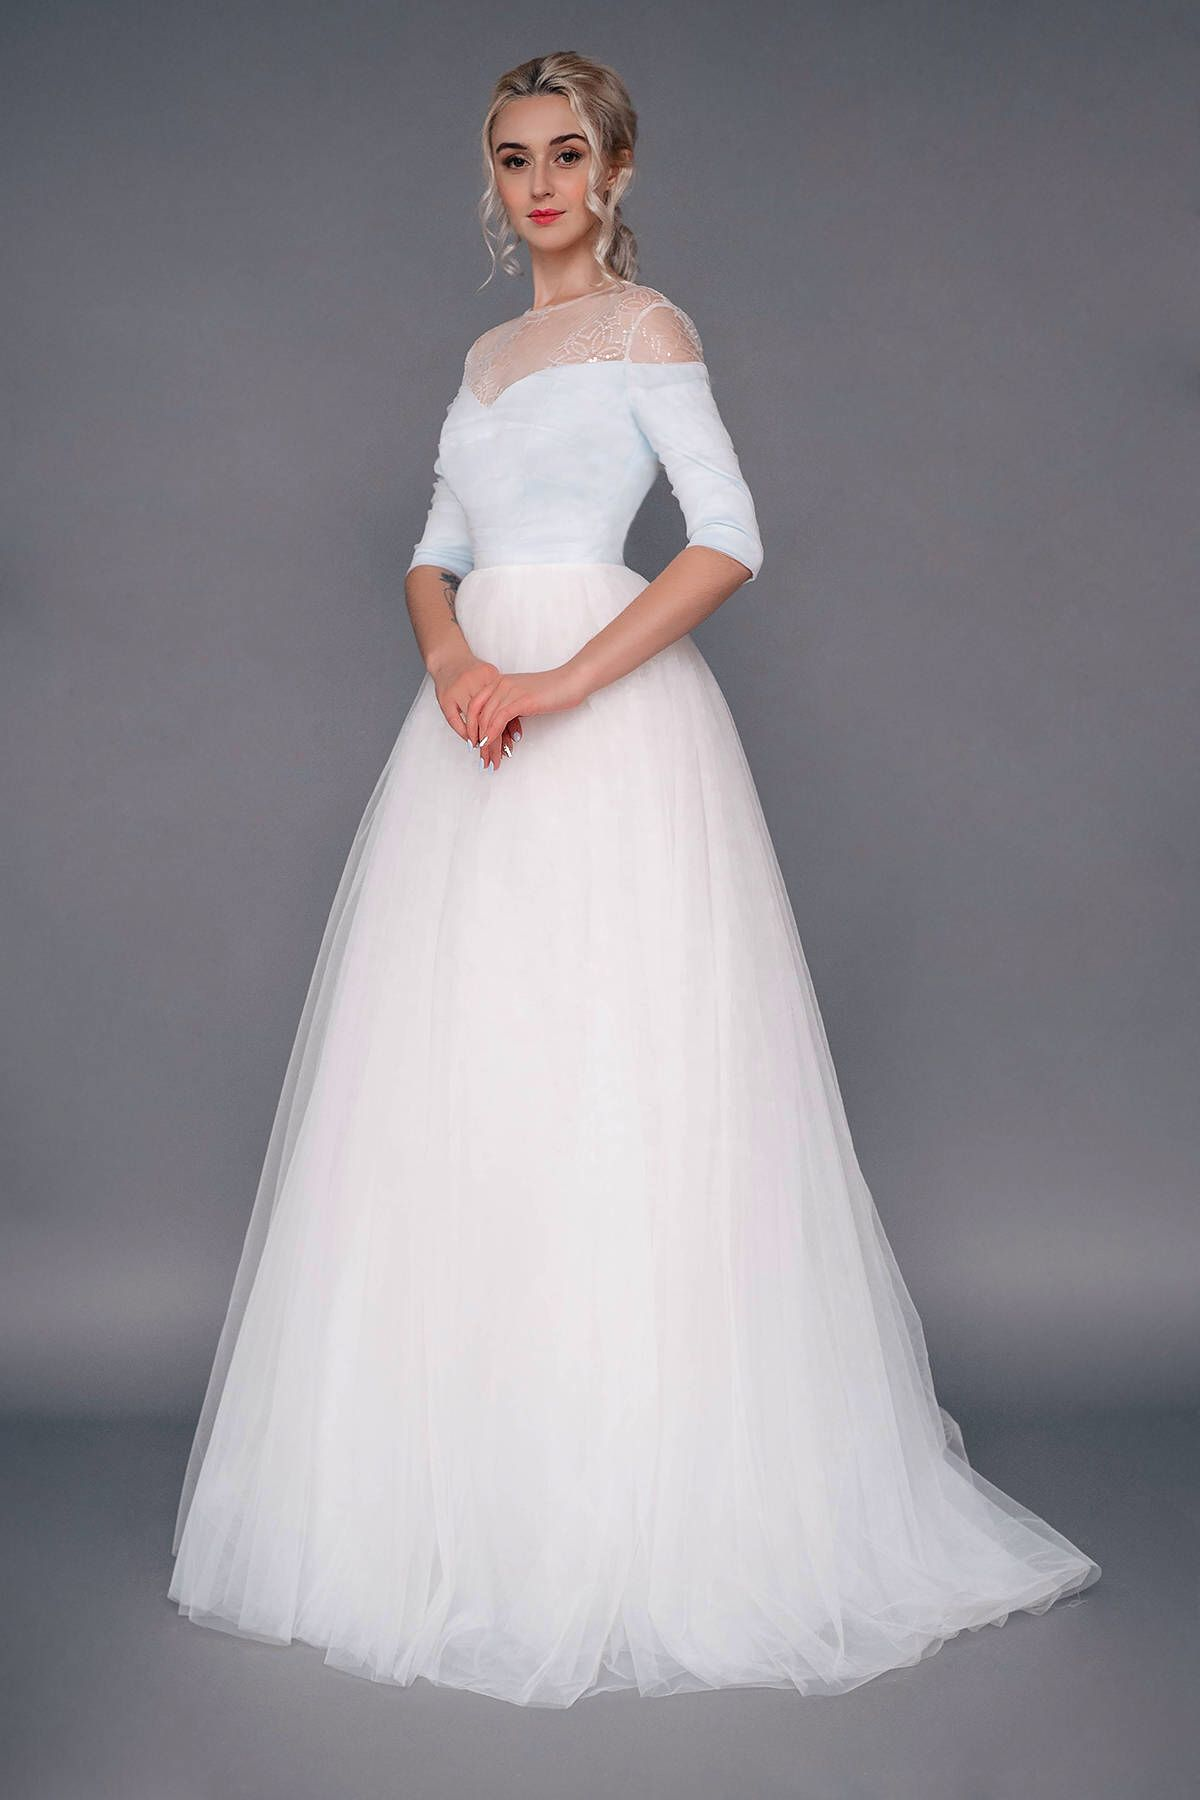 Sample sale us white and blue tulle wedding dress